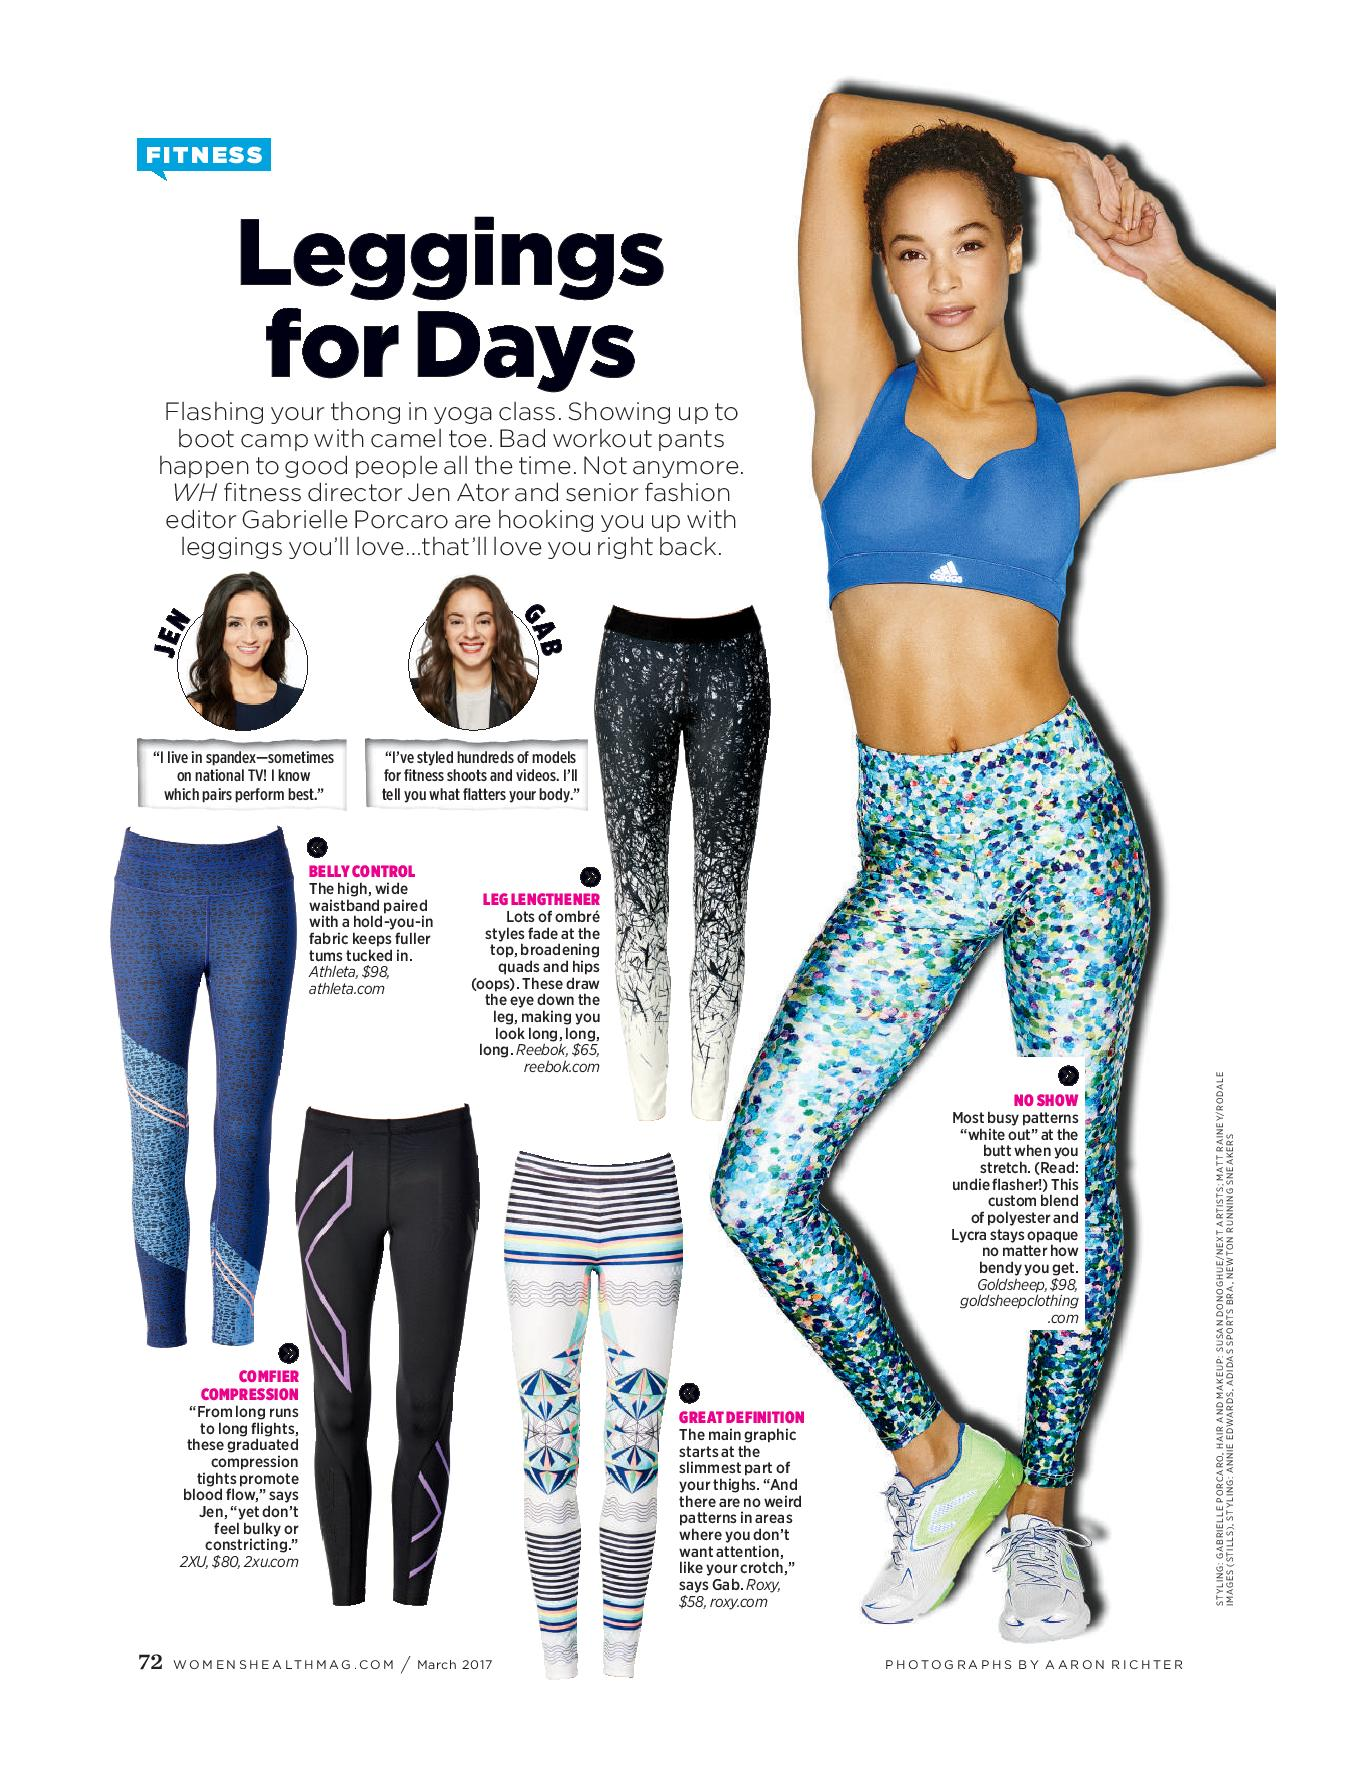 WH_072_WHFIT_WORKOUTGEAR01_WH0317.compressed-page-001.jpg